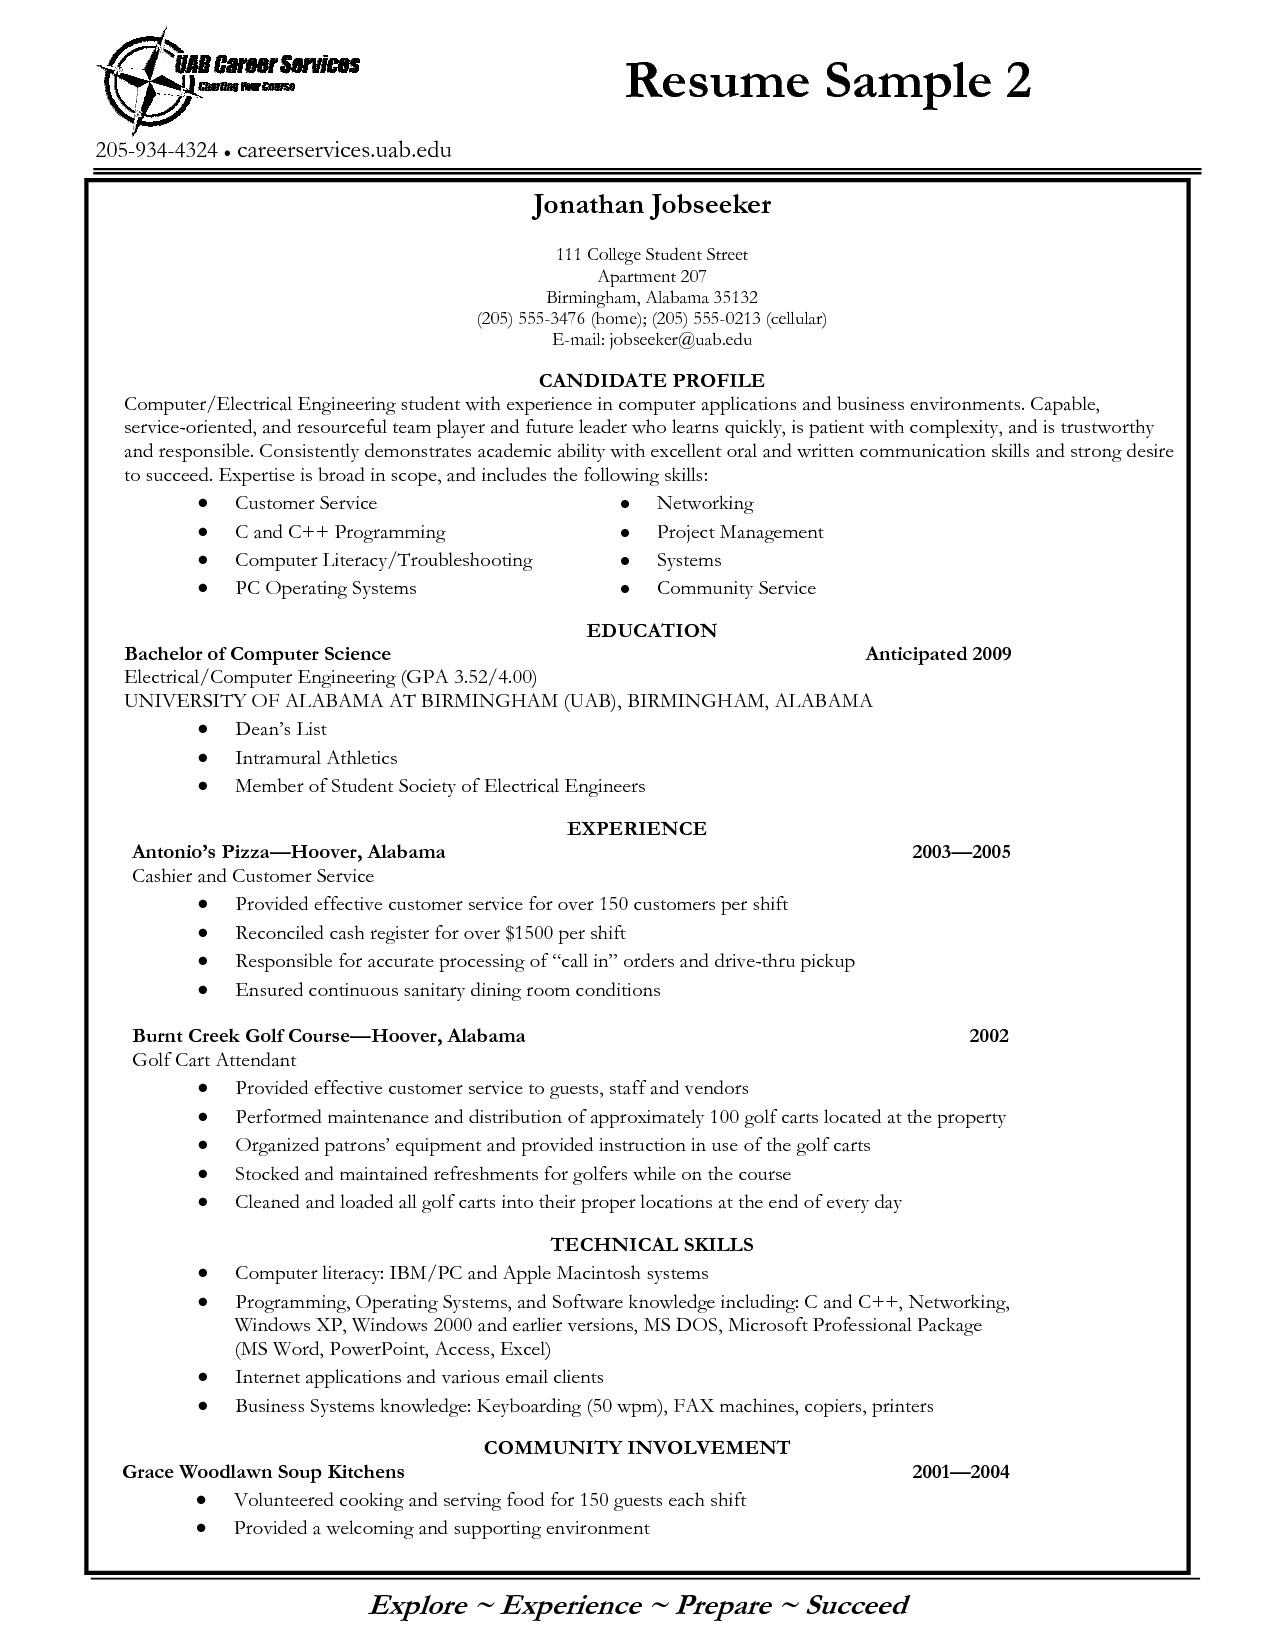 Resume For College Tags College Graduate Resume No Experience College Graduate Resume